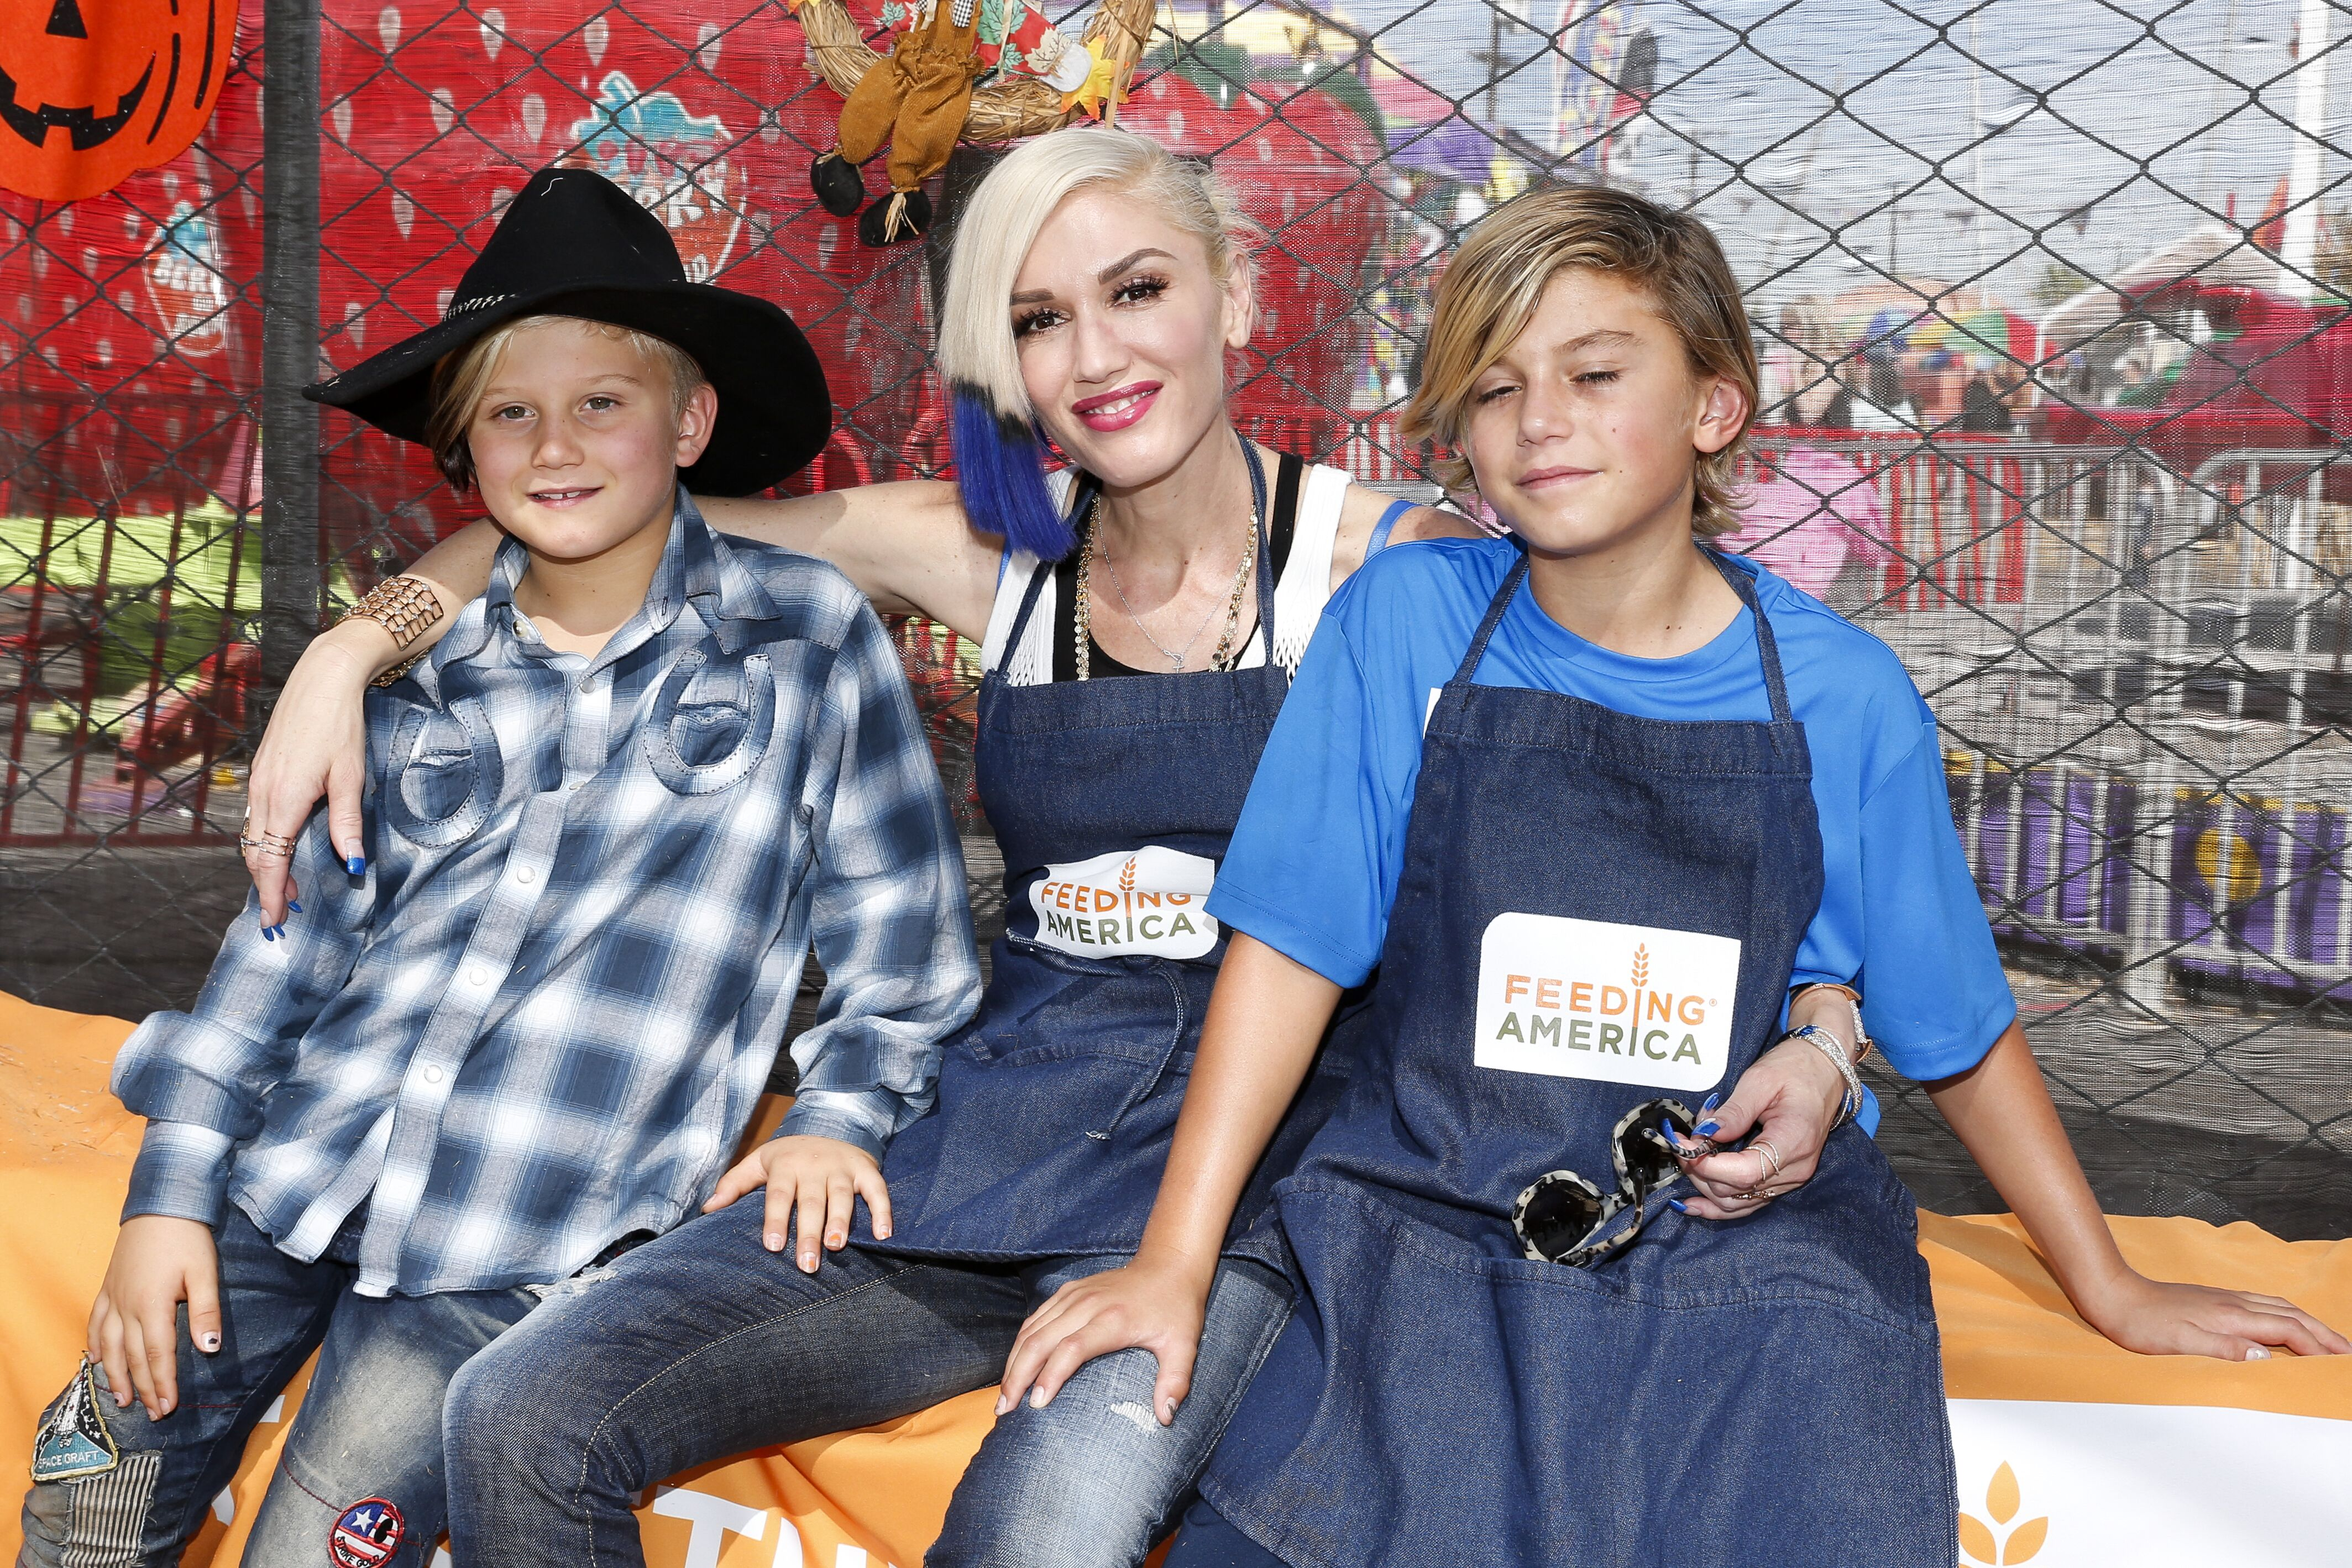 Zuma Rossdale, singer Gwen Stefani and Kingston Rossdale volunteer at the Feeding America Holiday Harvest event at Shawn's Pumpkin Patch in partnership with the LA Regional Food Bank | Getty Images